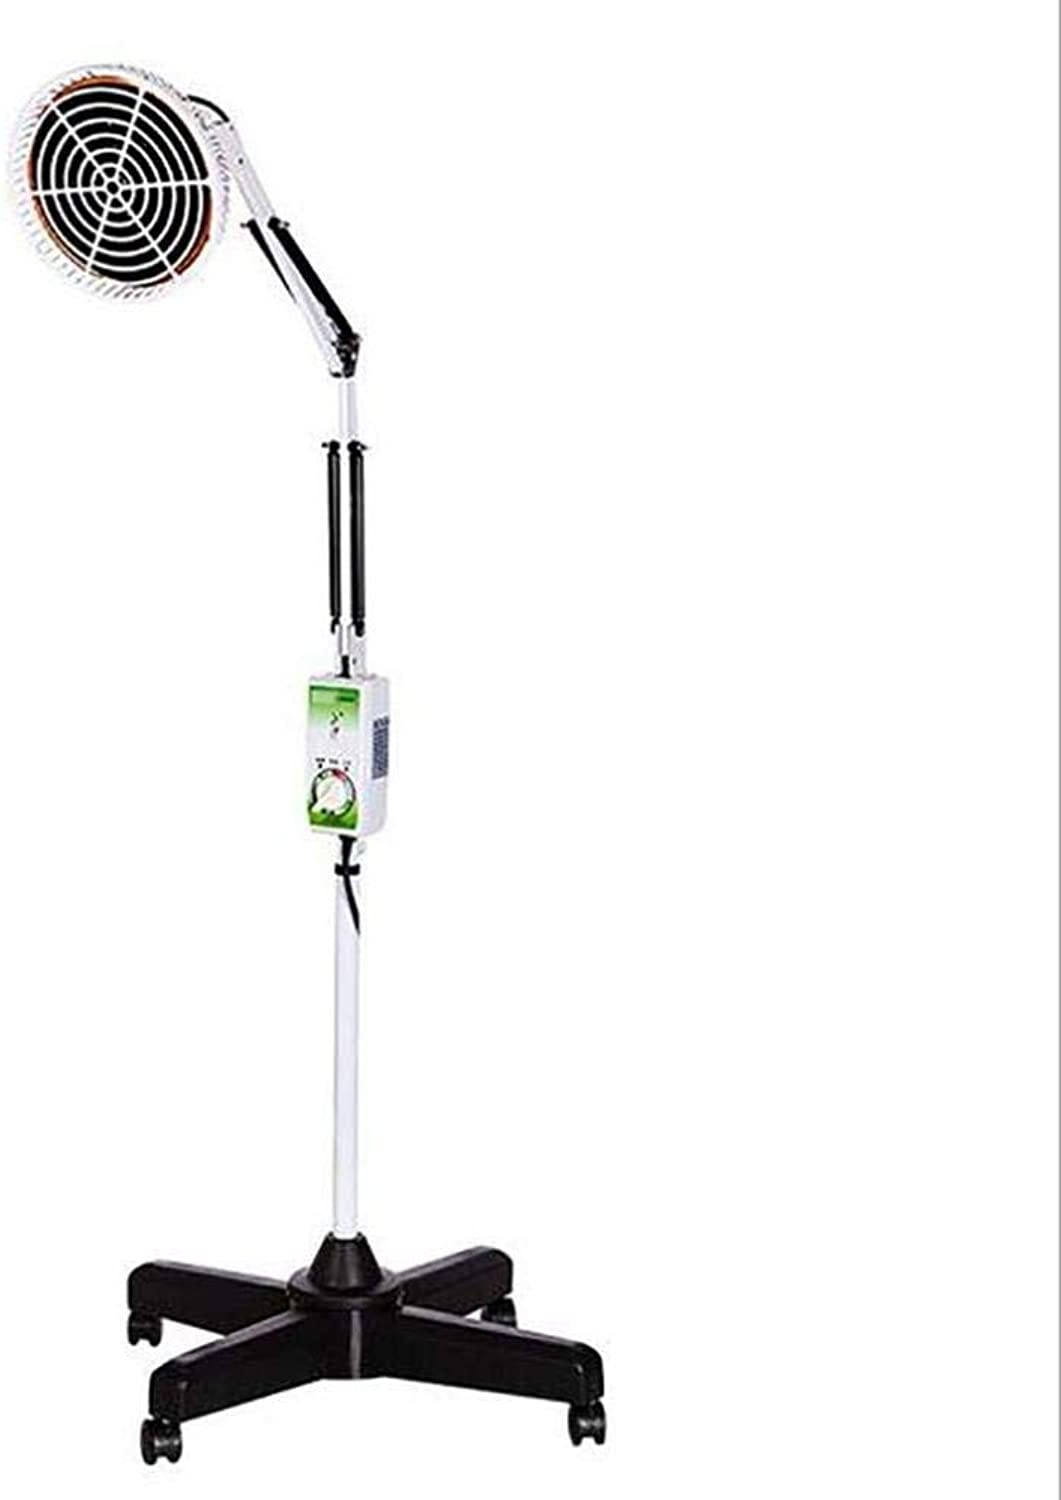 LlTdp Infrared Physiotherapy Instrument Bake Light greenical Treatment Instrument 220V Light,As Show,One Size Massager